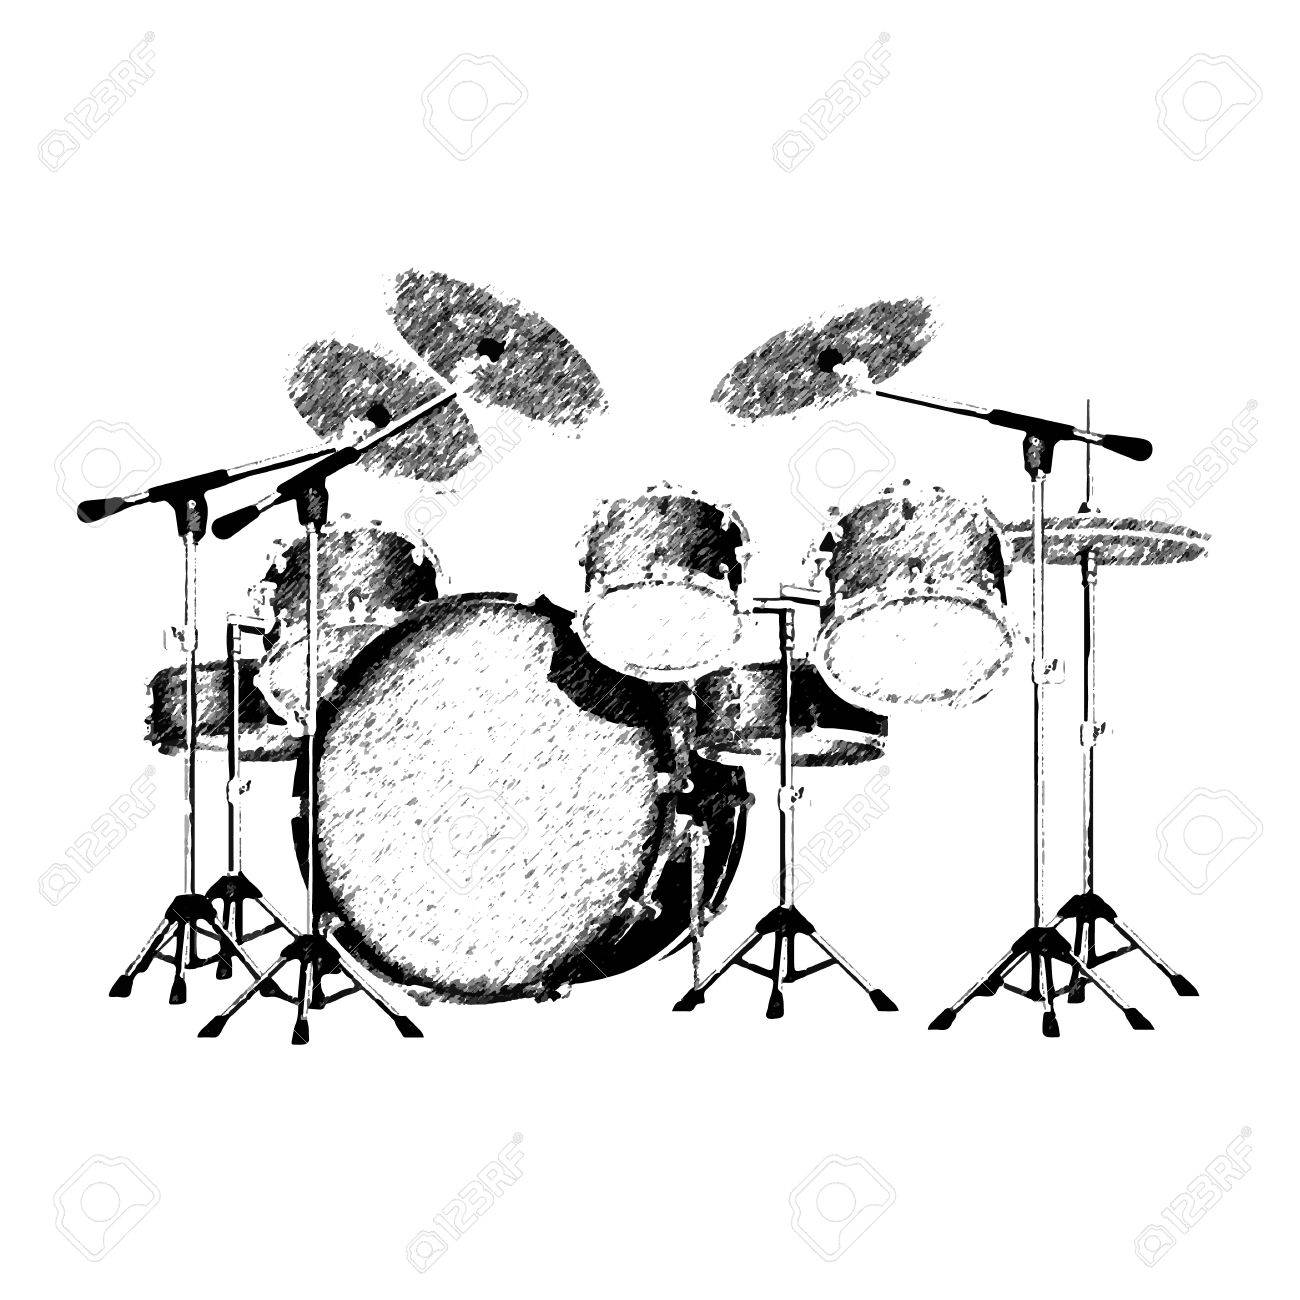 Vector Illustration Of A Drum Set Drawing Strokes Isolated Object Can Be Used With Any